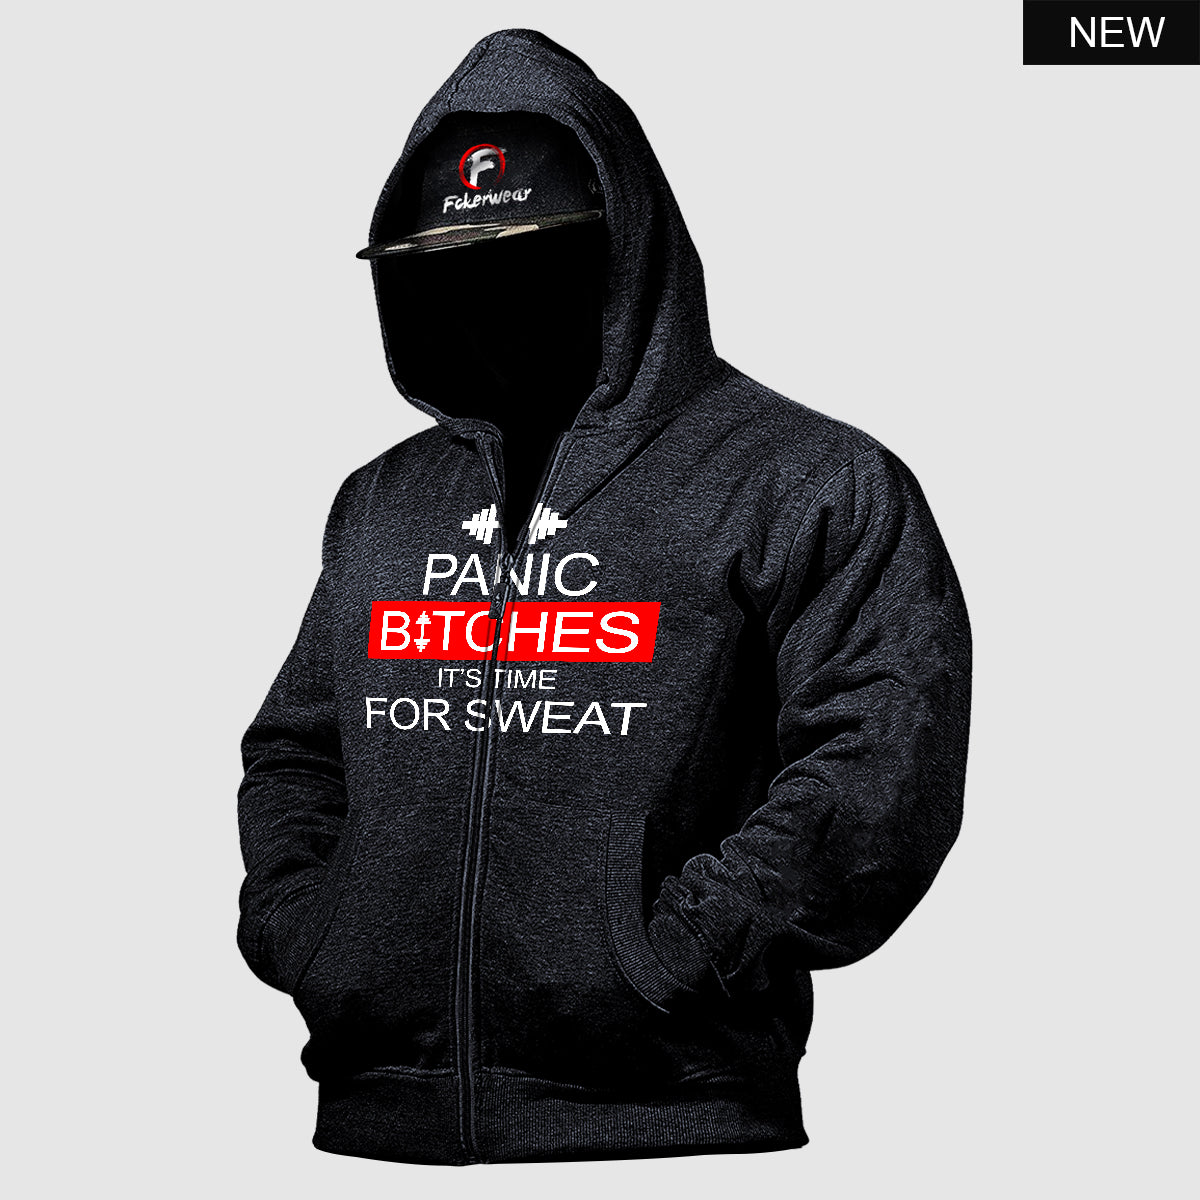 Panic Bitches its time for Sweat™  zip hoodie